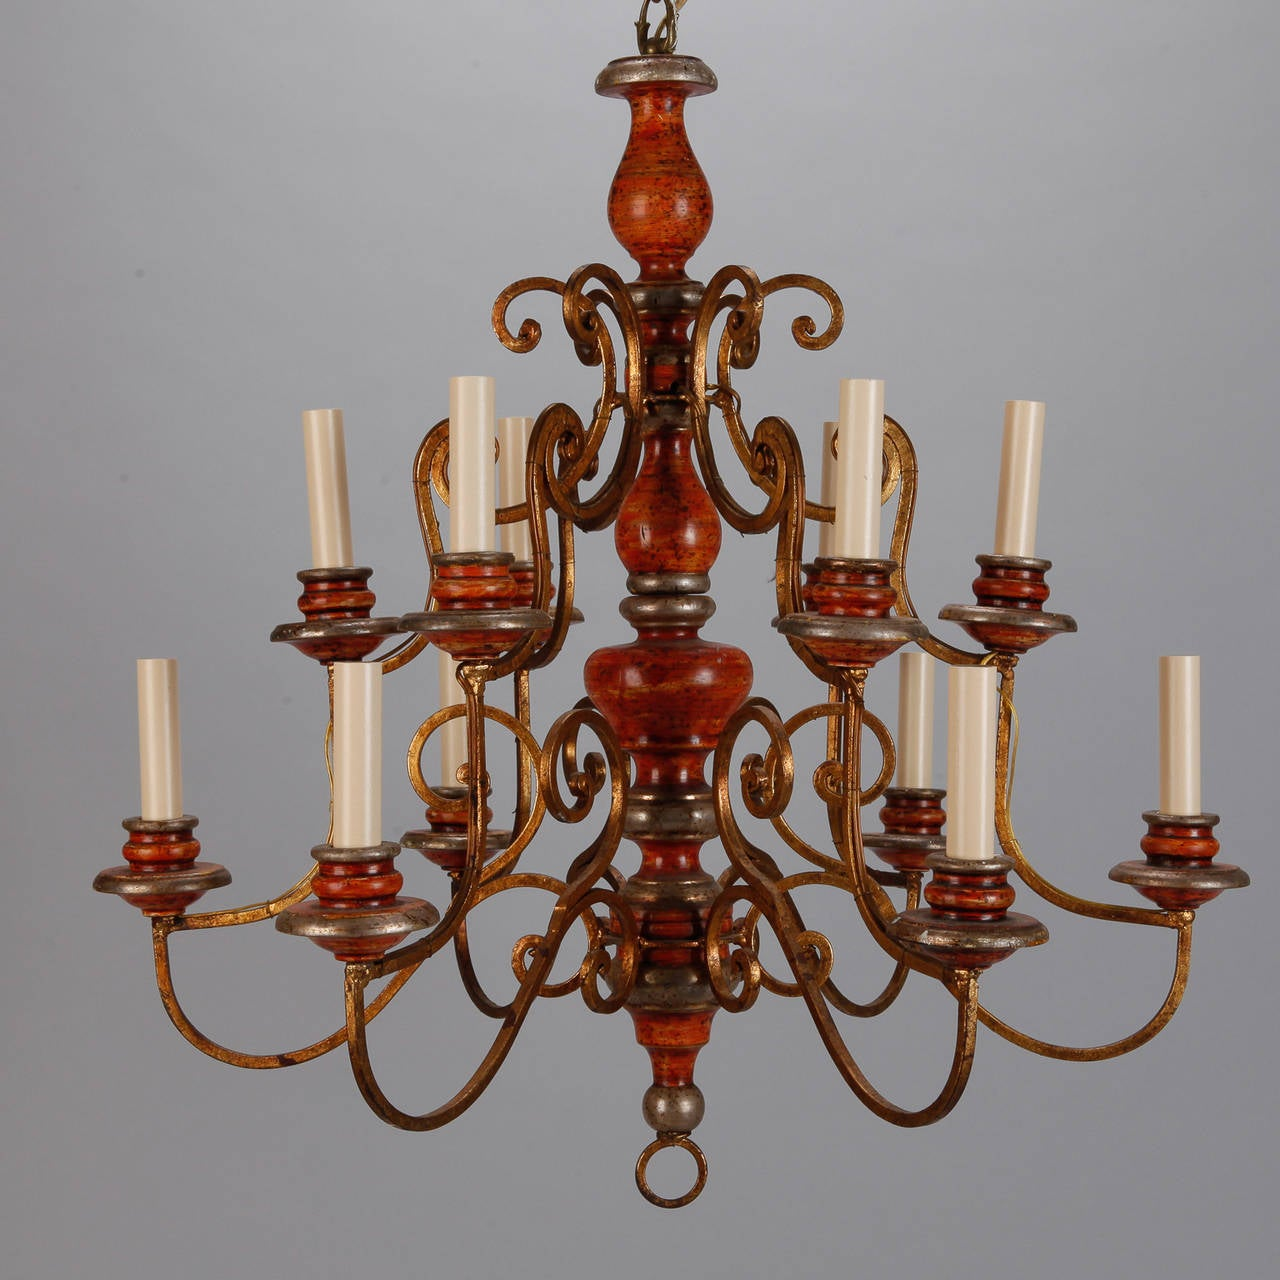 Circa 1930s twelve light chandelier from Italy with turned and wood center shaft in red painted finish, gilded iron arms and supports and wood bobeches. New electrical wiring for US standards. # of Sockets:  12 Socket Type:  Candelabra